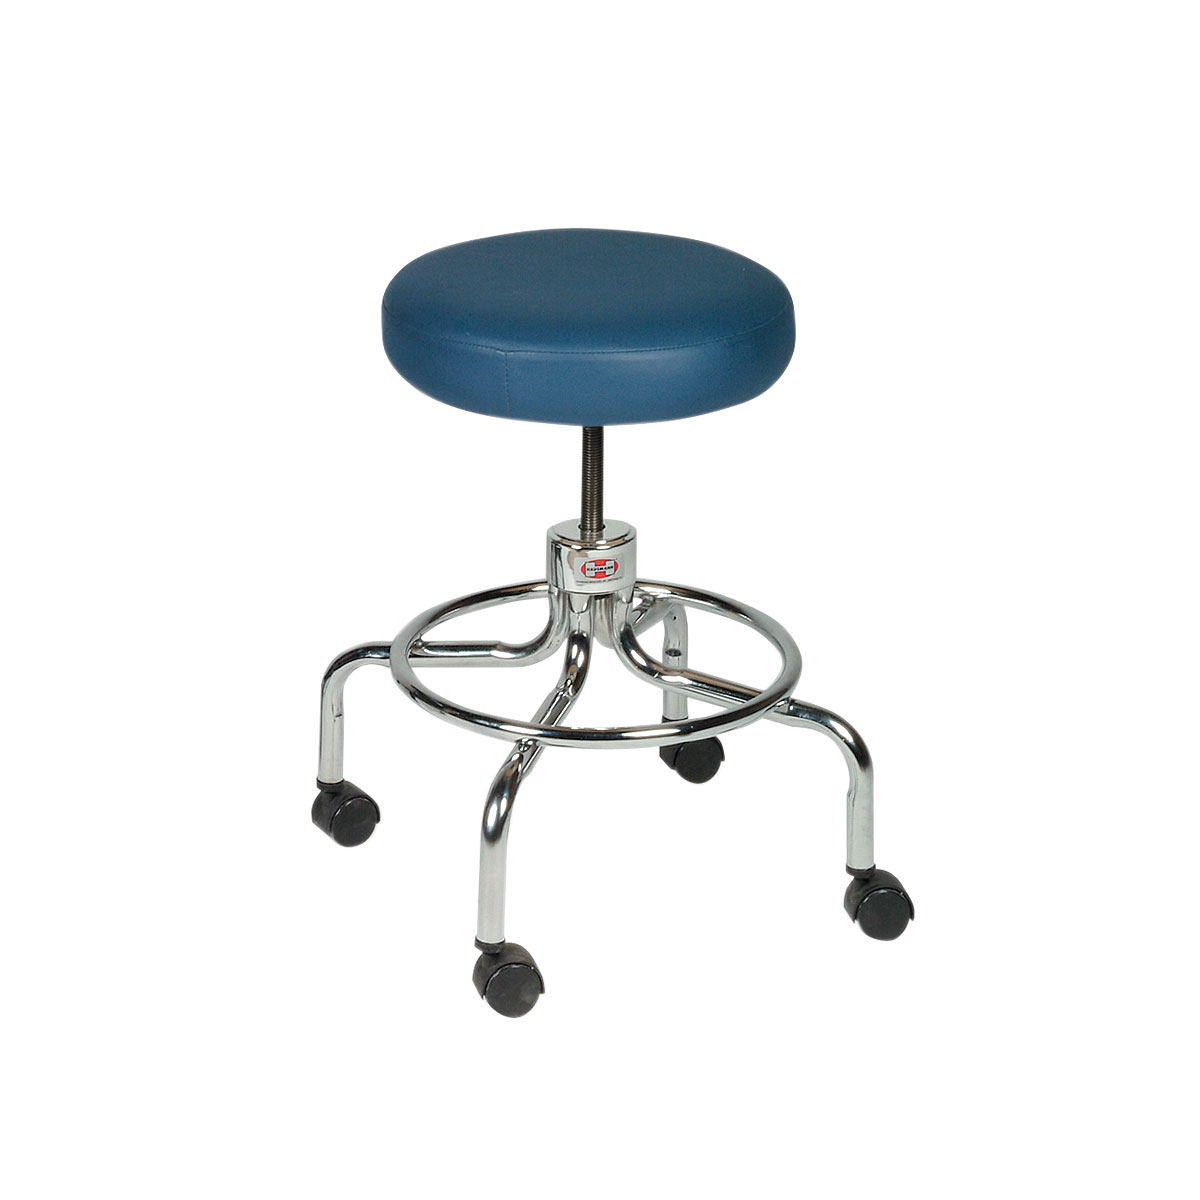 revolving chair features unfinished wooden chairs cheap stool on chrome base w50560 hausmann 2116